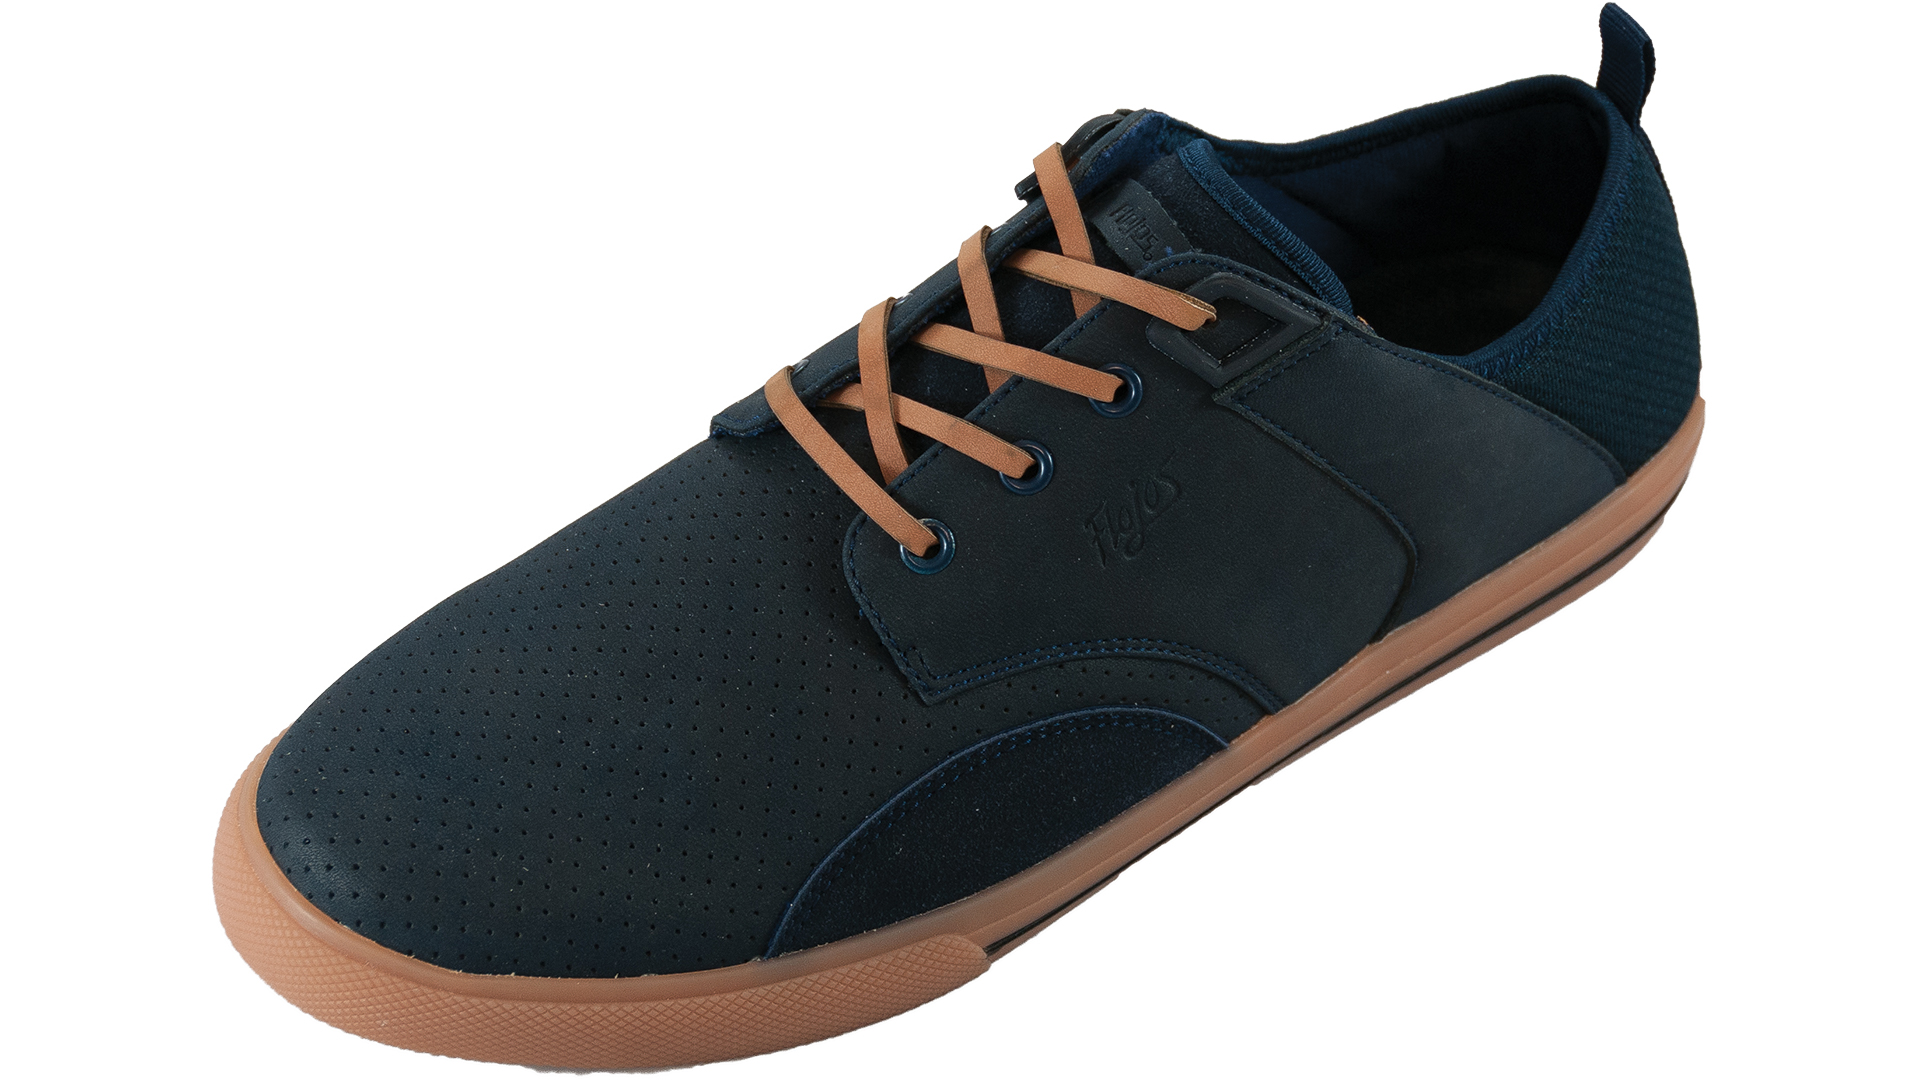 Flojos Mens Benito Lace Up Suede Closed Toe Sneaker (10, Navy Gum) by